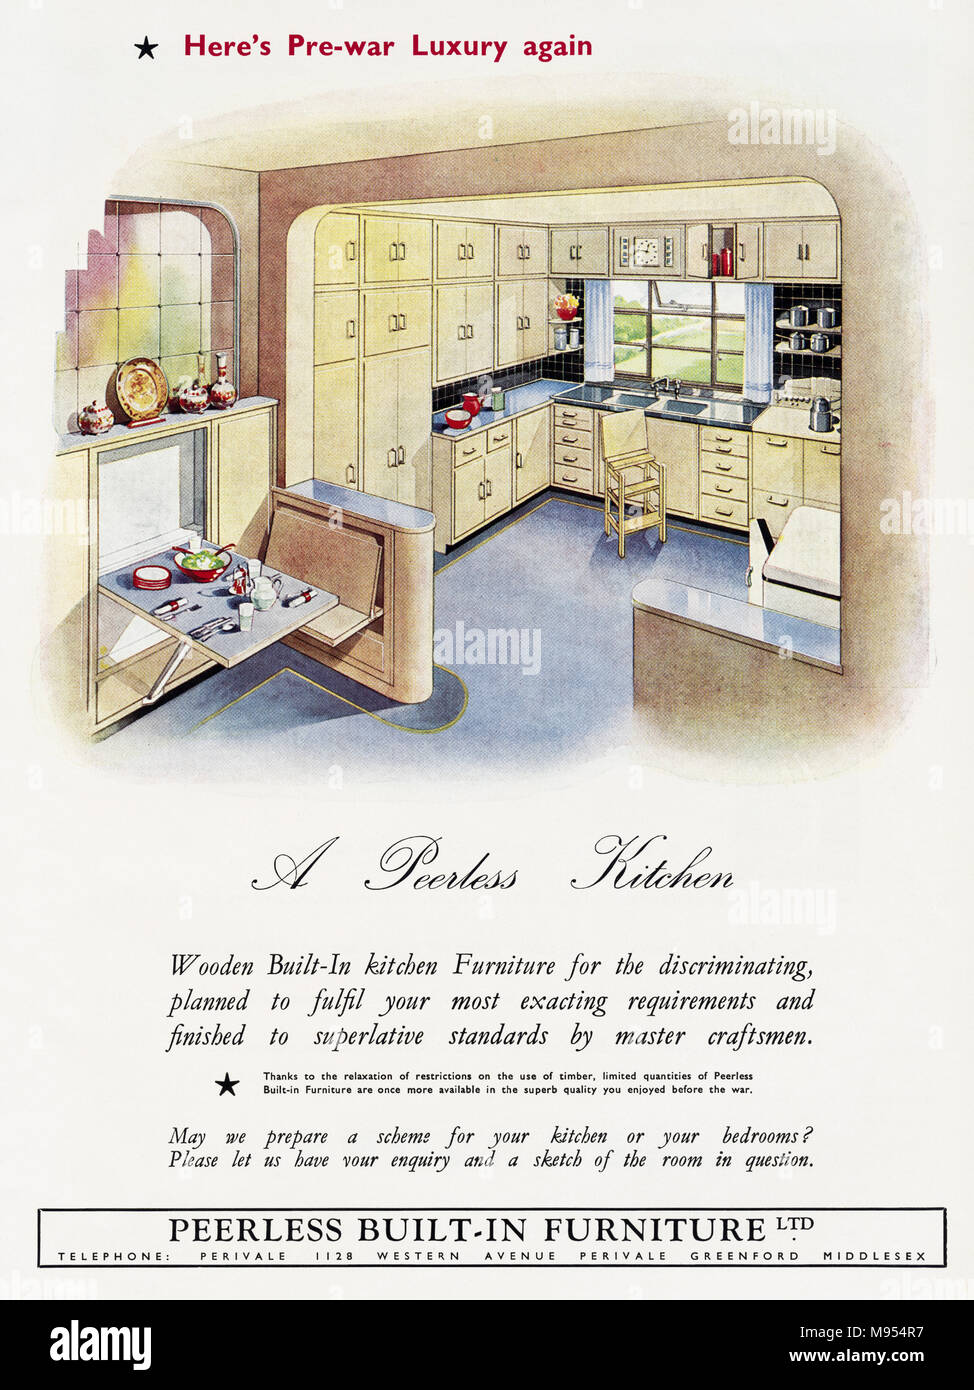 1950s Kitchen Ad Stock Photos Images Alamy Peerless Industrial Mixer Wiring Diagram Original Old Vintage Advertisement Advertising Fitted Kitchens Of Perivale Greenford Middlesex England Uk In